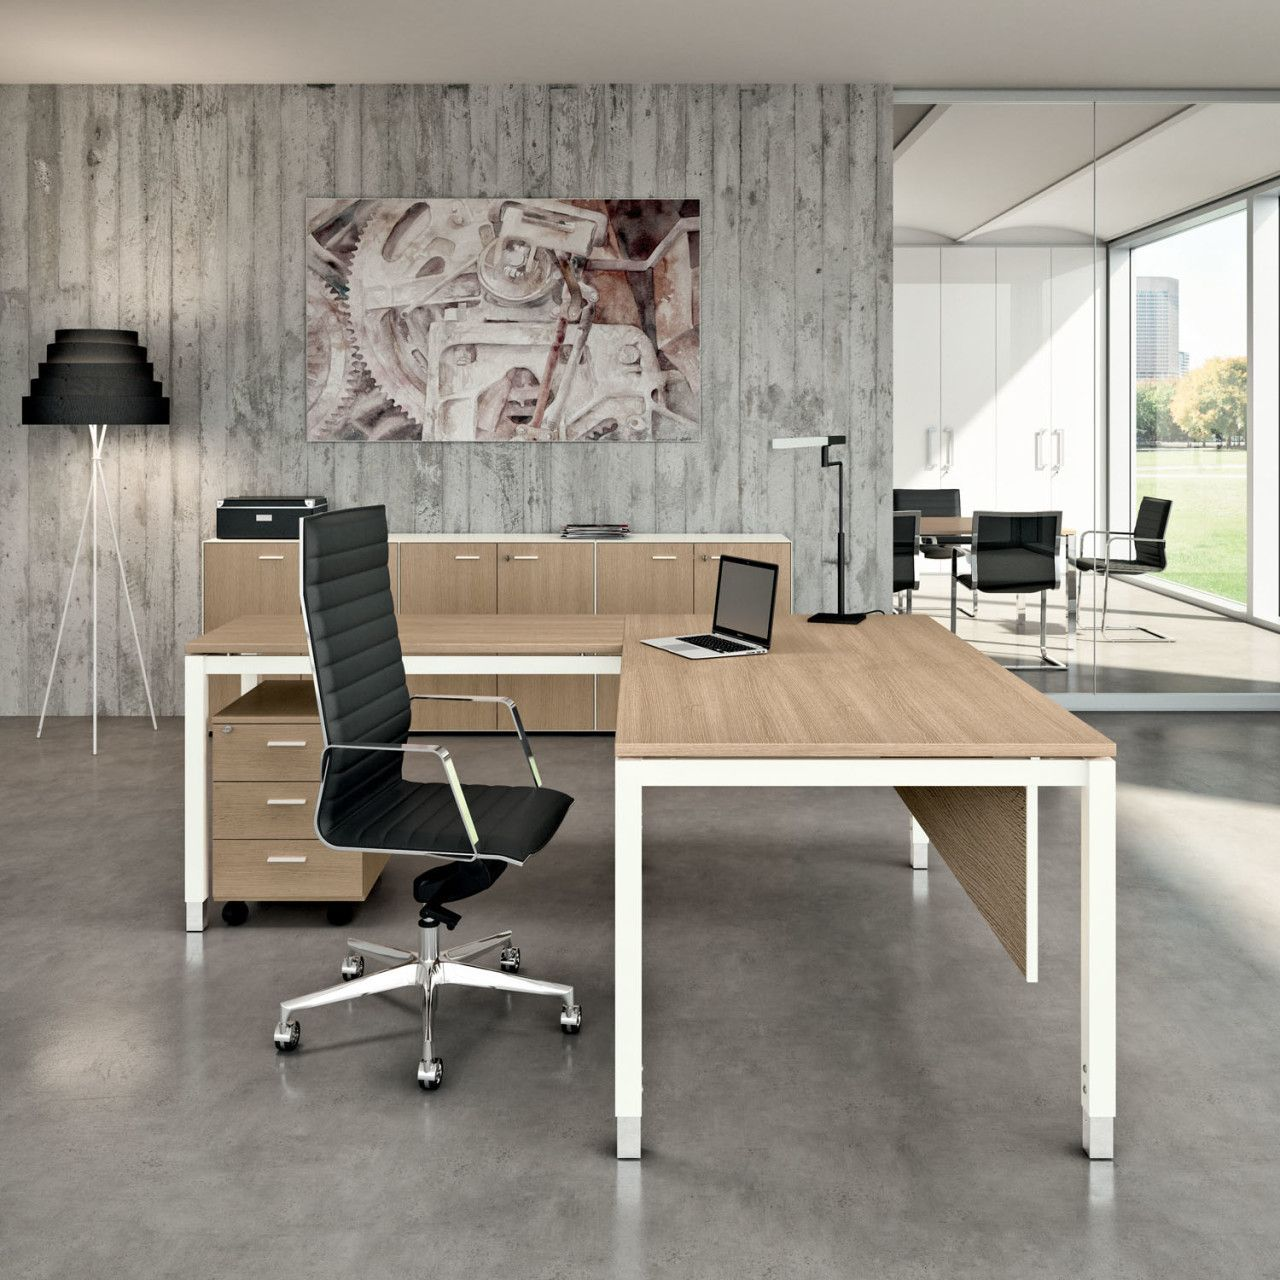 Office design goes beyond color and decoration, impacting ...